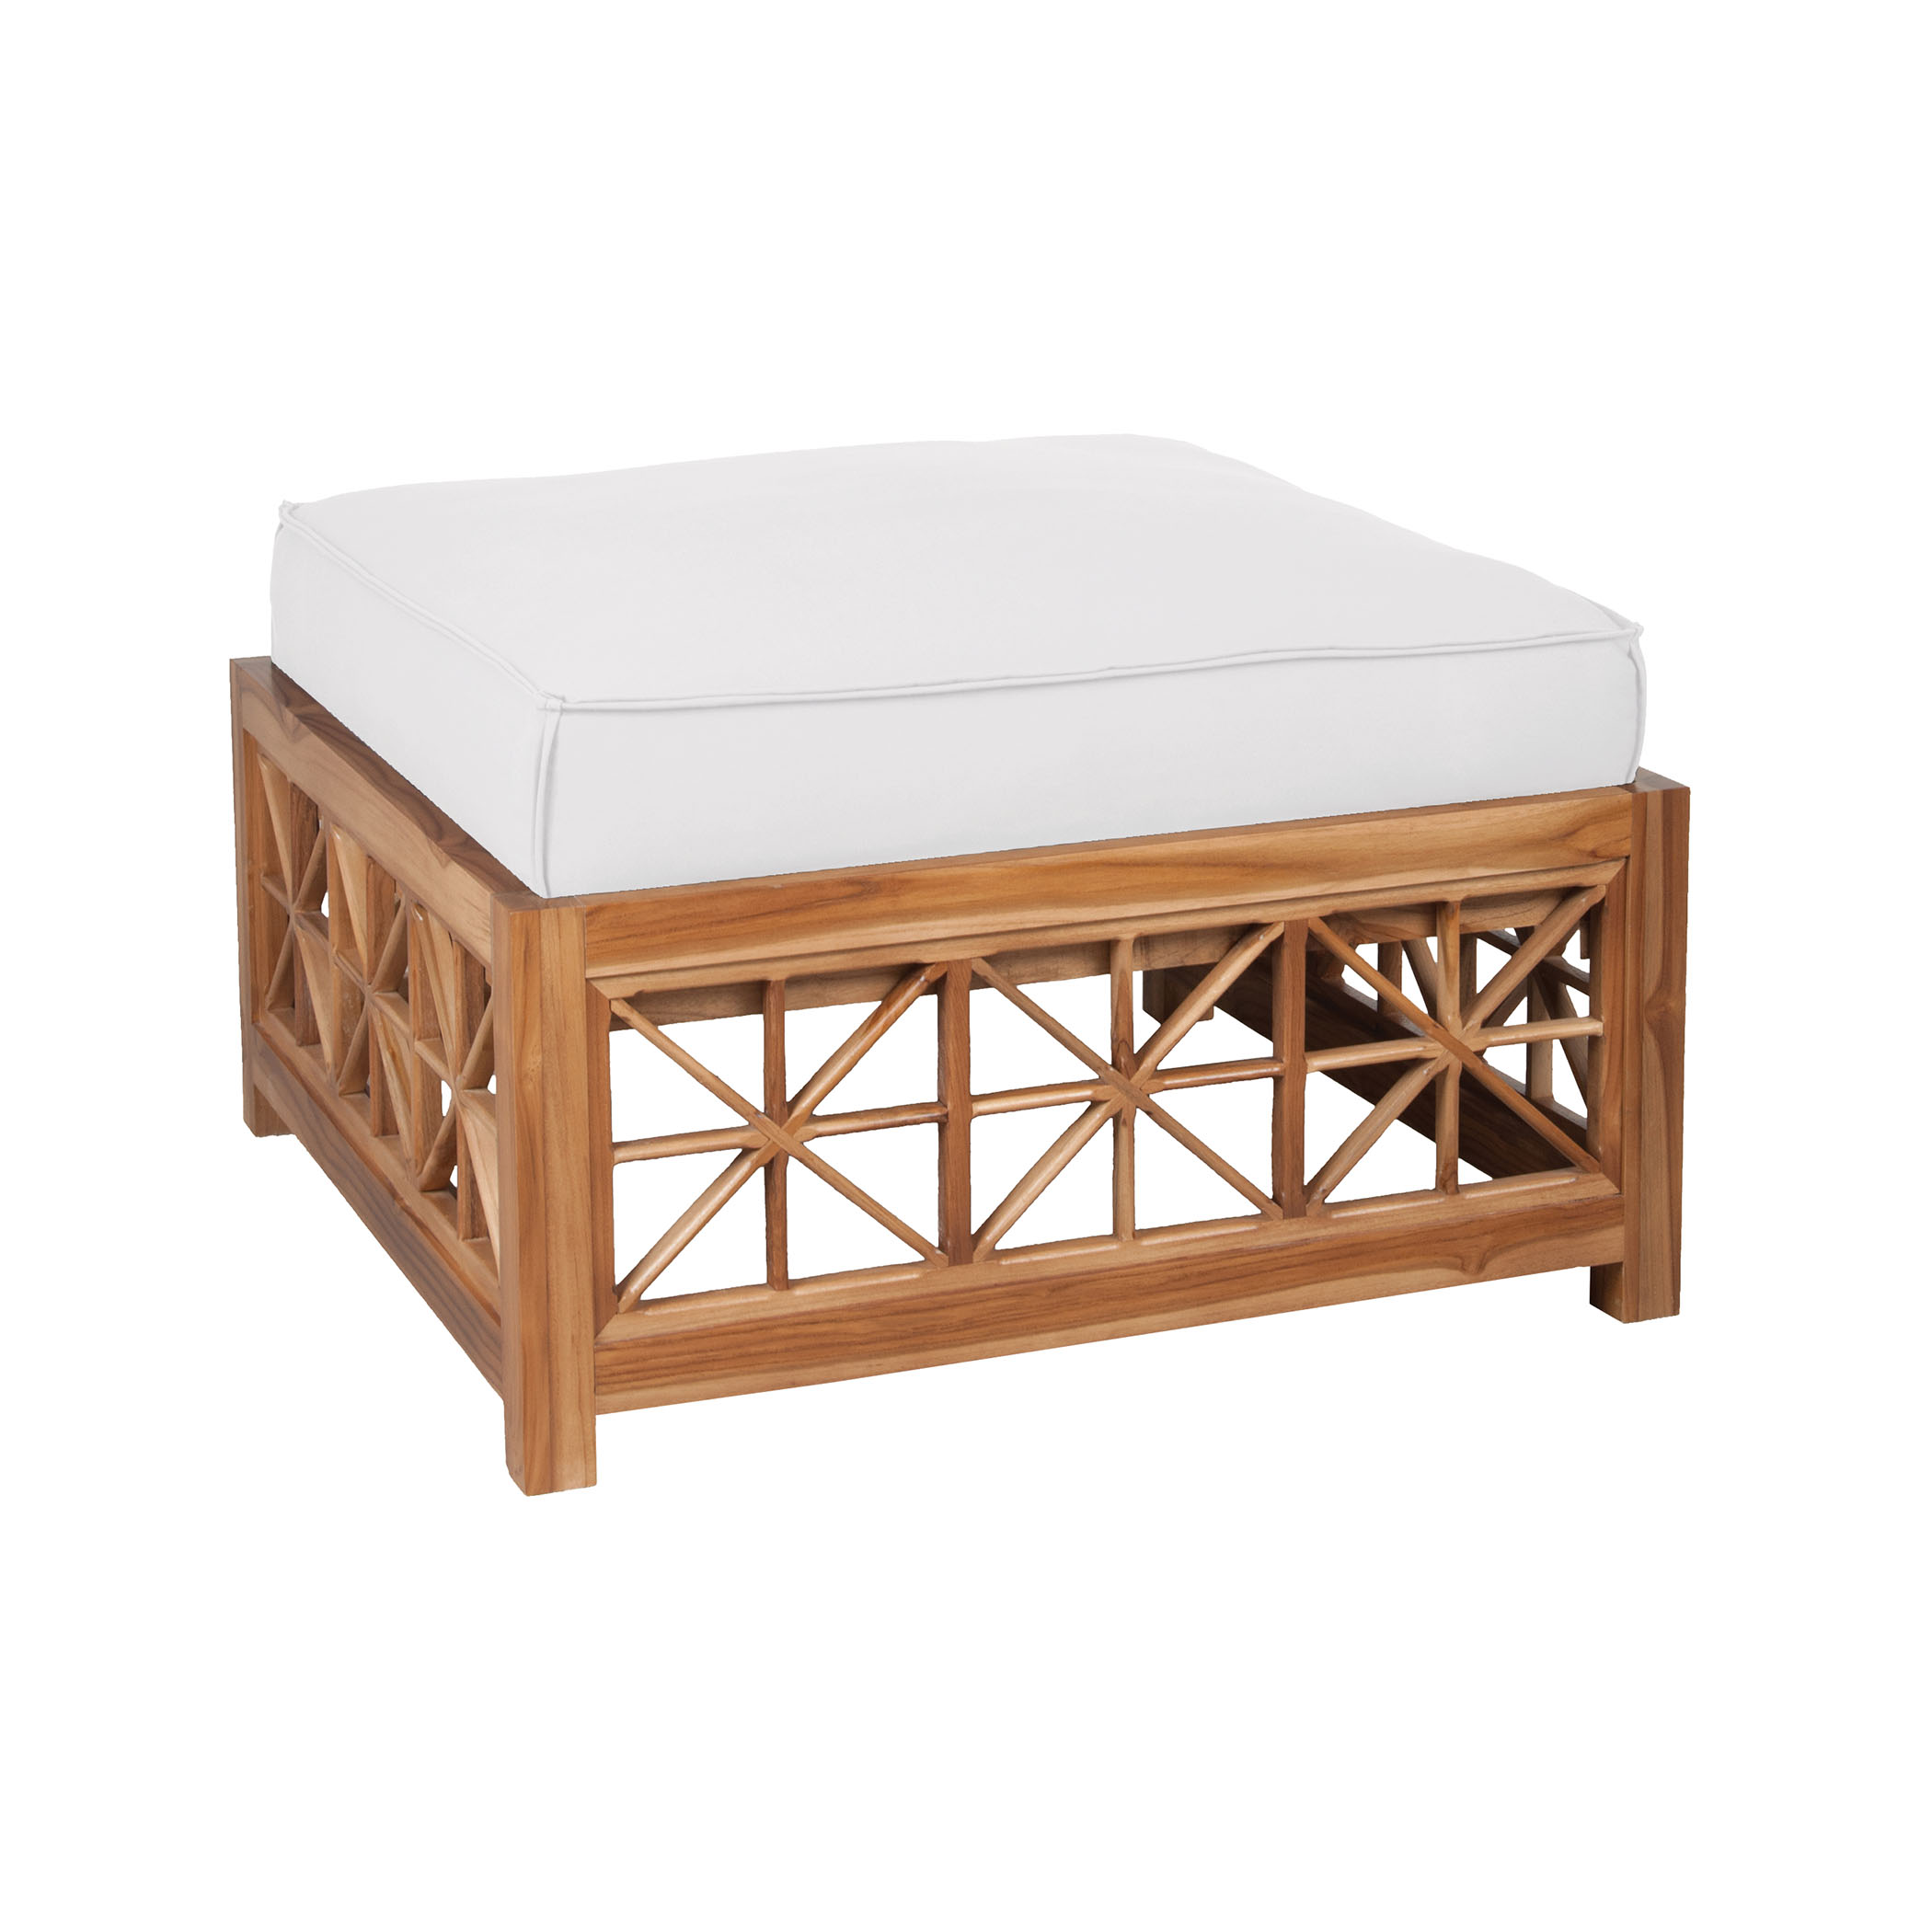 Teak Lattice Square Ottoman Cushion in White | Elk Home